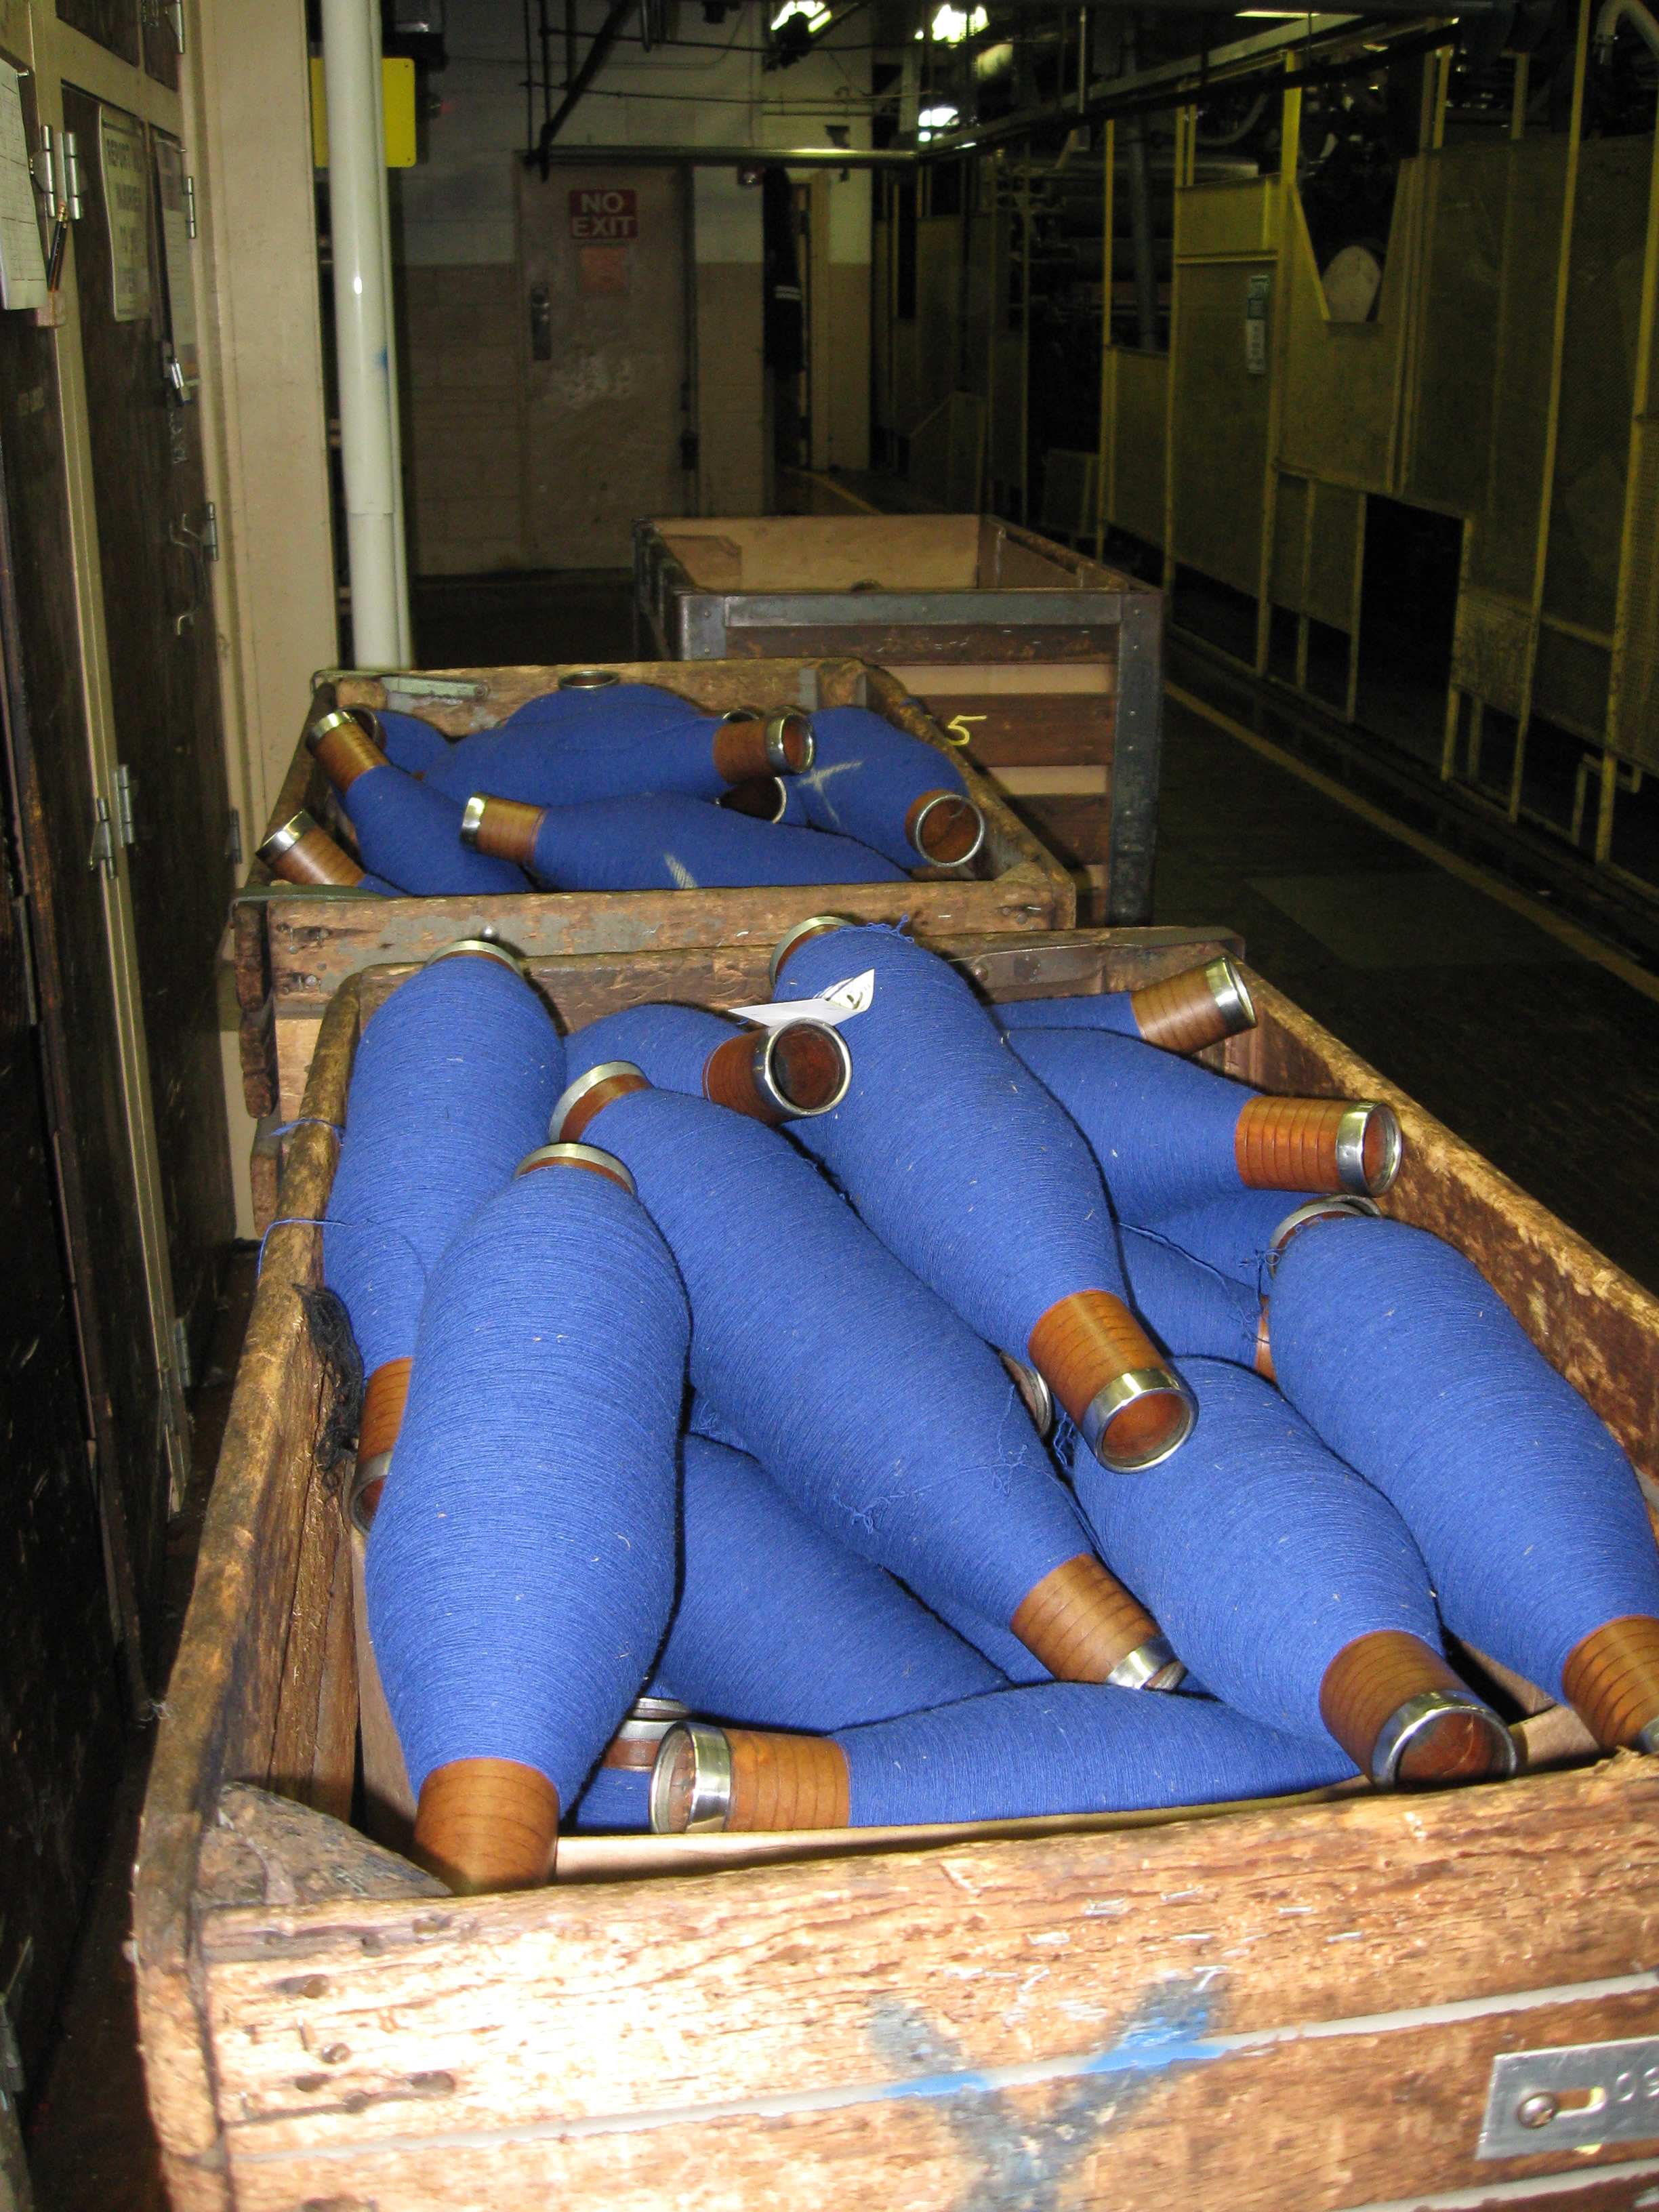 Bobbins of Blue Thread